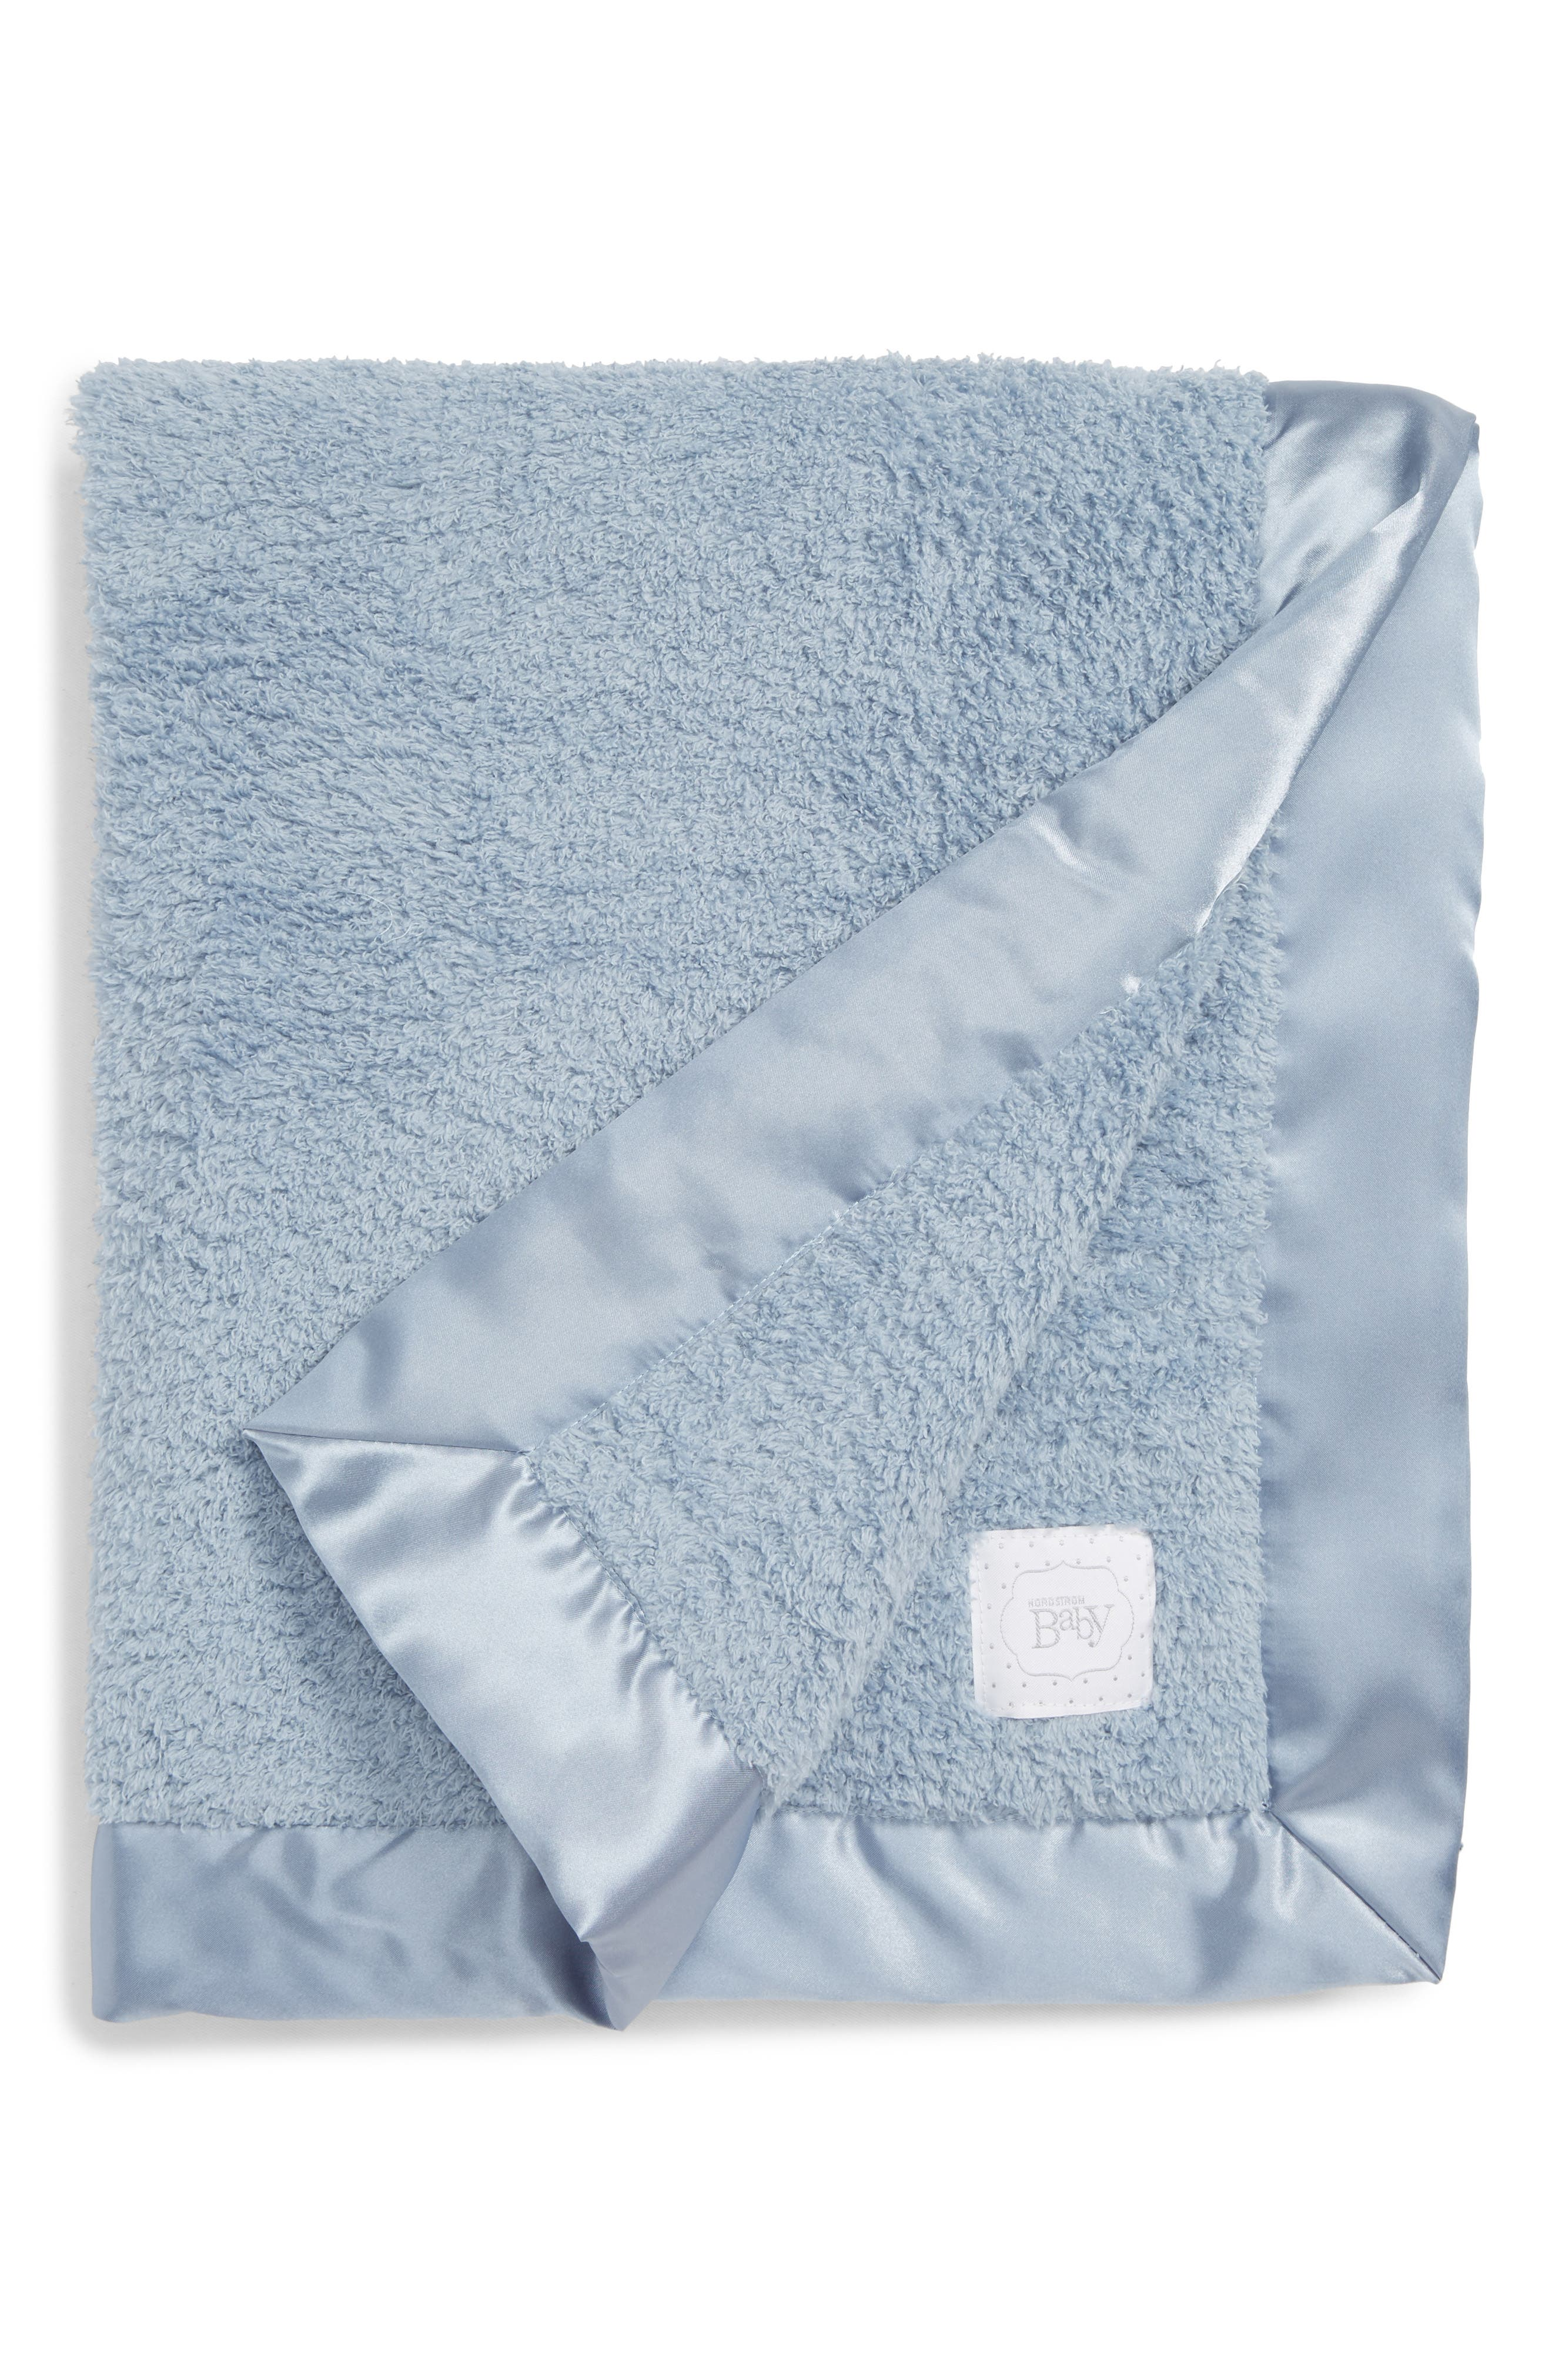 Luxe Chenille Blanket,                         Main,                         color, BLUE DRIZZLE